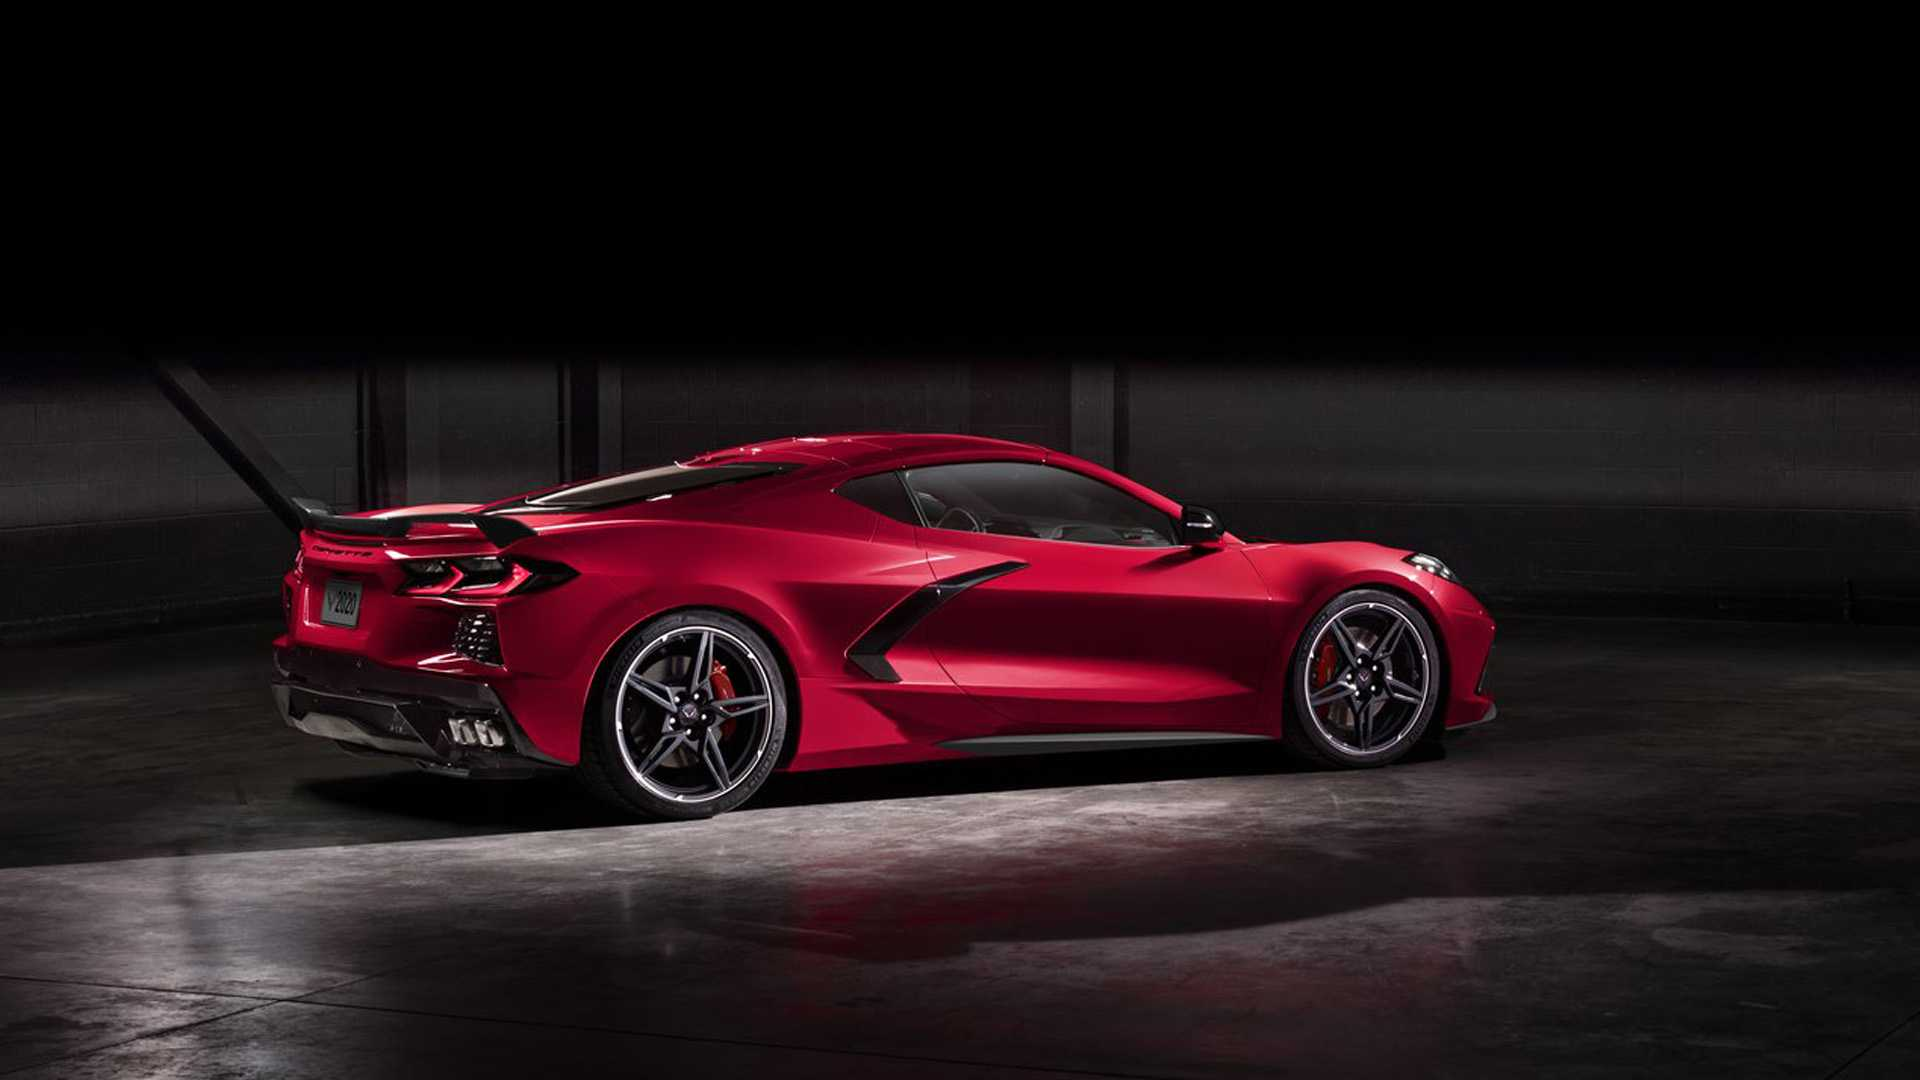 2020-corvette-stingray-leaked-photos